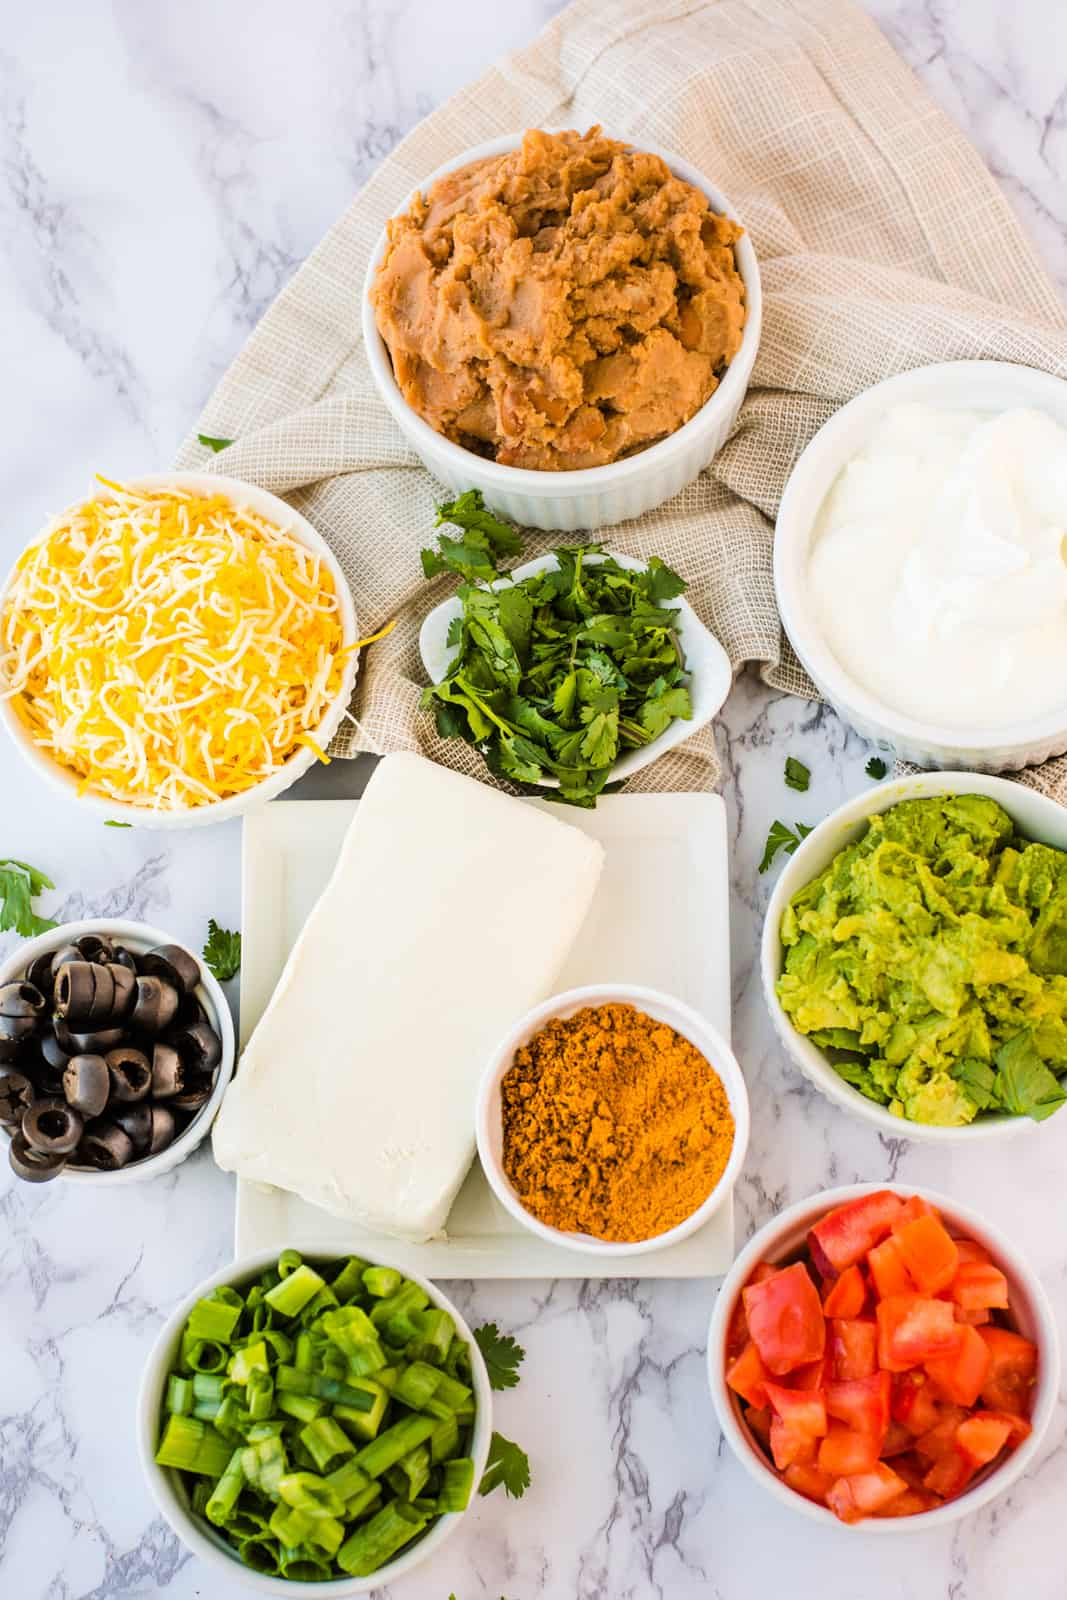 Ingredients needed to make 7 Layer Dip